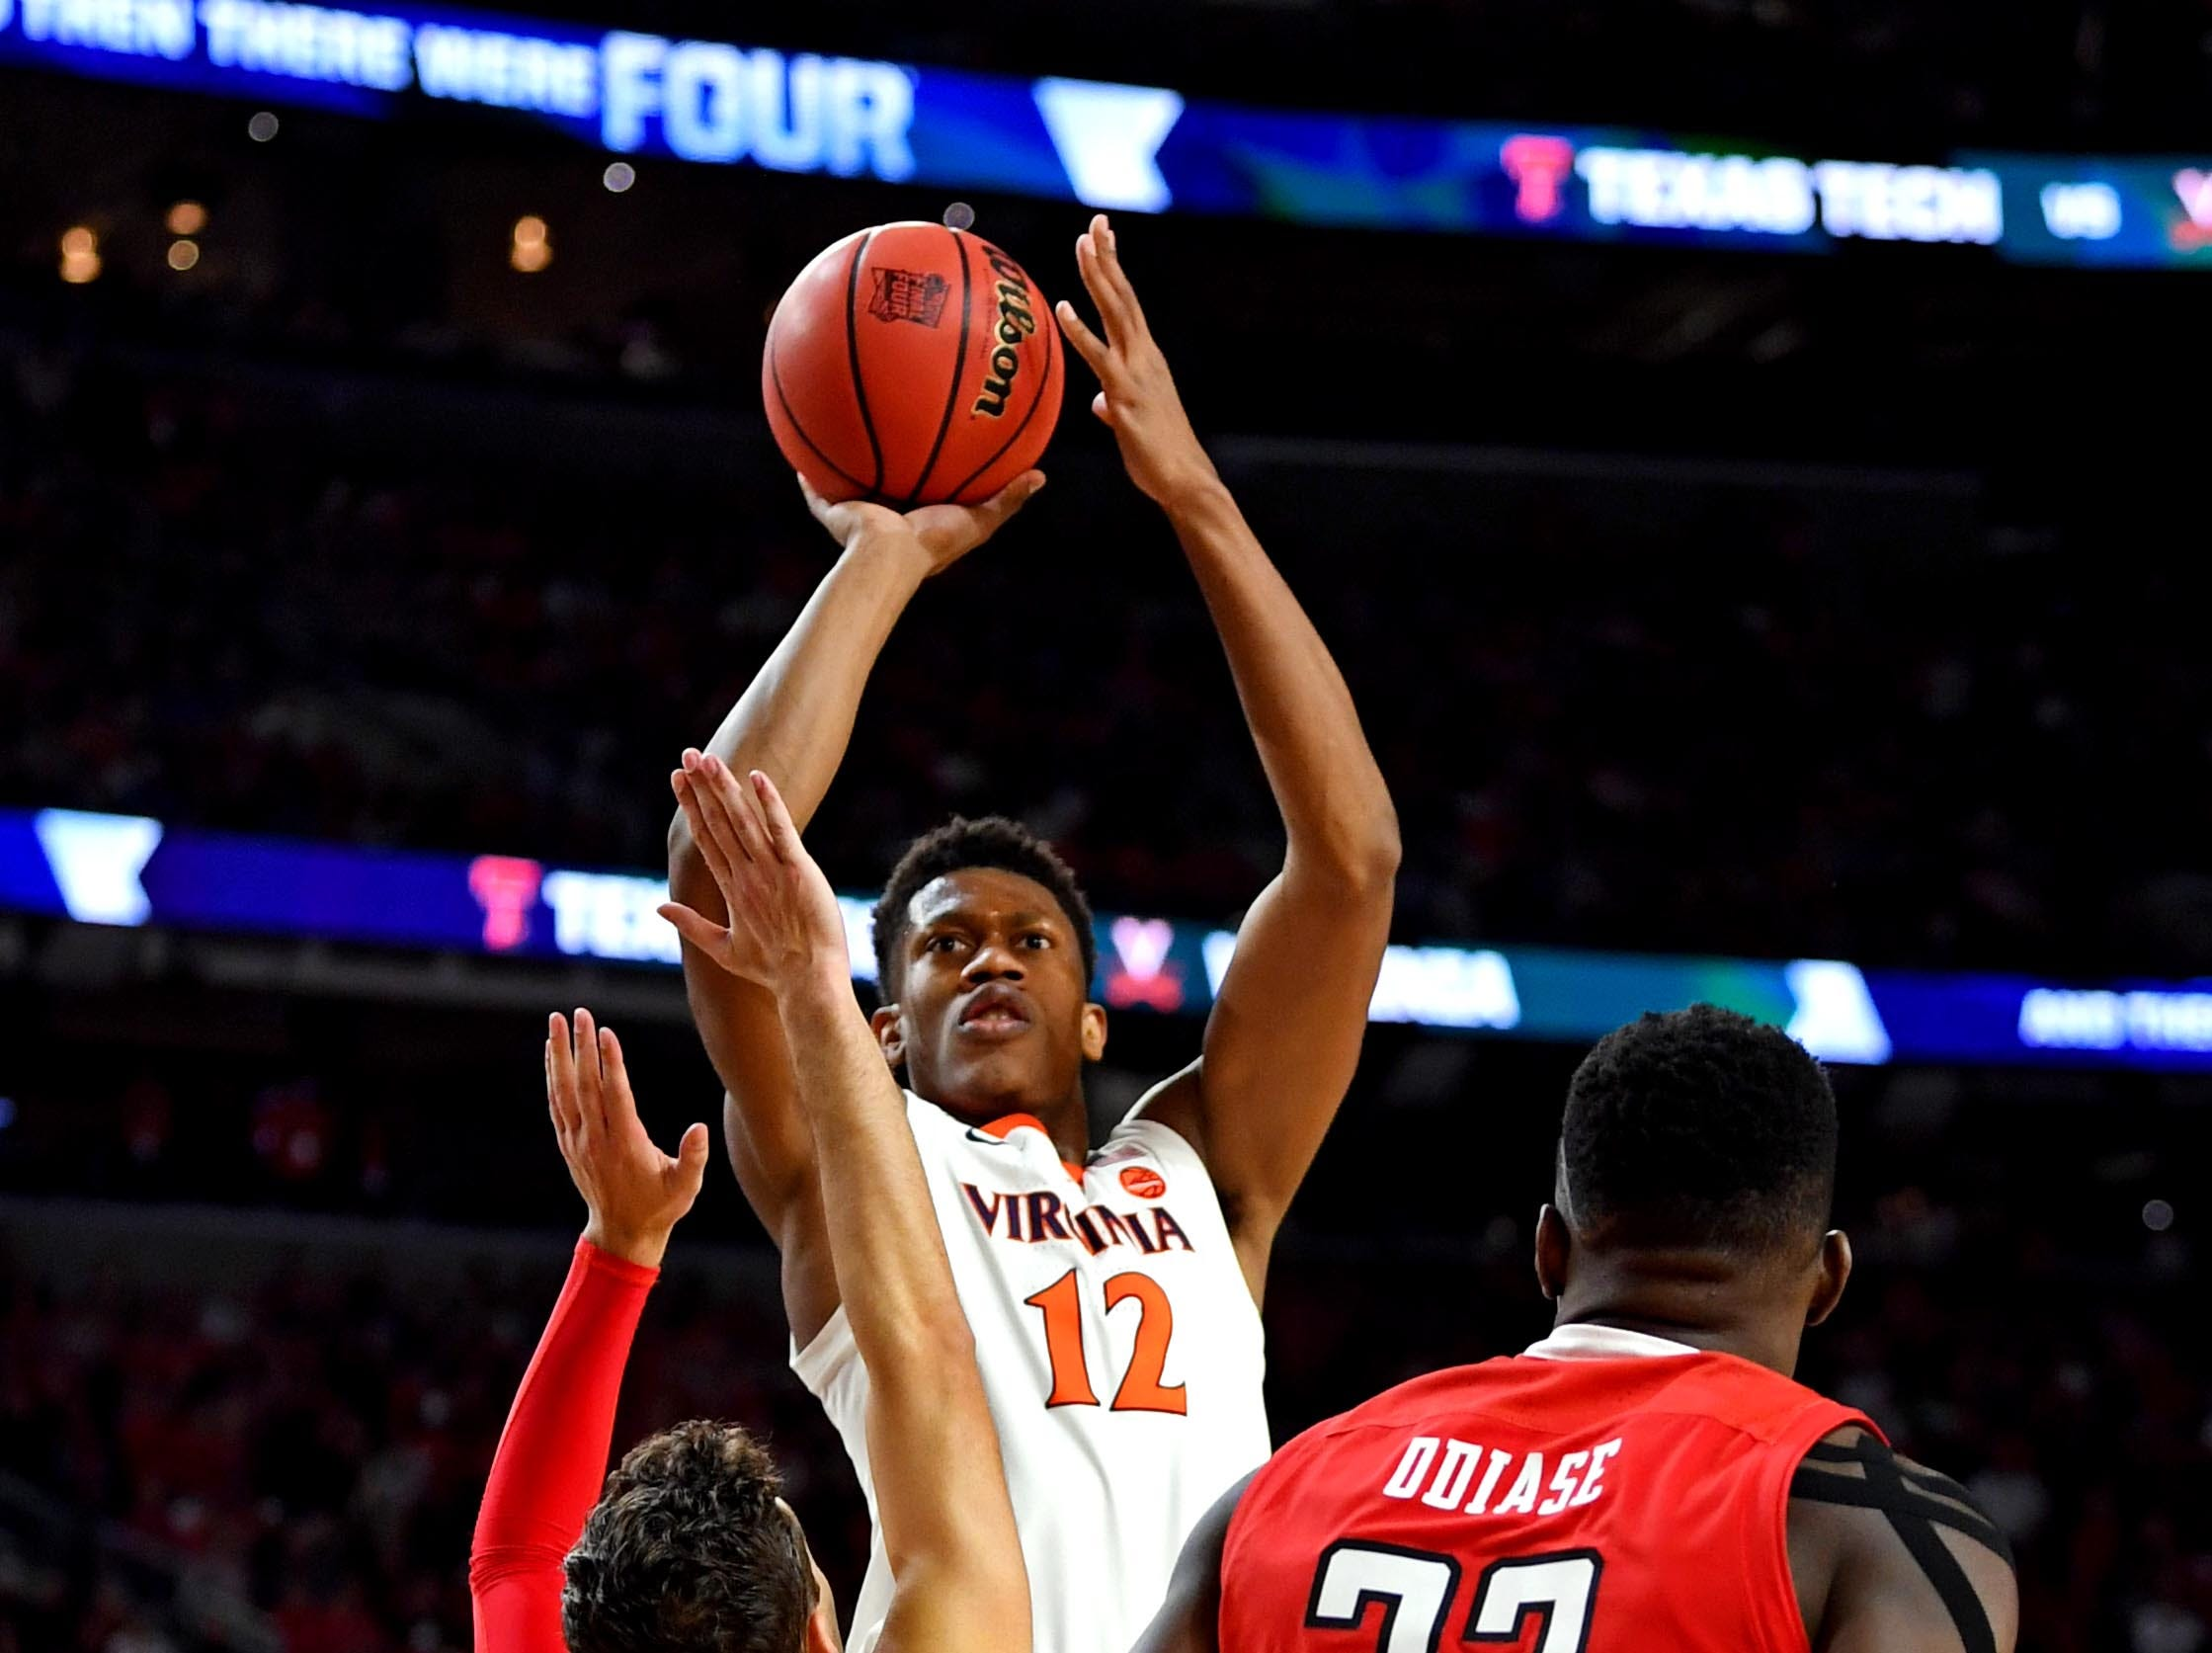 Apr 8, 2019; Minneapolis, MN, USA; Virginia Cavaliers guard De'Andre Hunter (12) shoots the ball against Texas Tech Red Raiders guard Davide Moretti (25) during the first half in the championship game of the 2019 men's Final Four at US Bank Stadium. Mandatory Credit: Bob Donnan-USA TODAY Sports